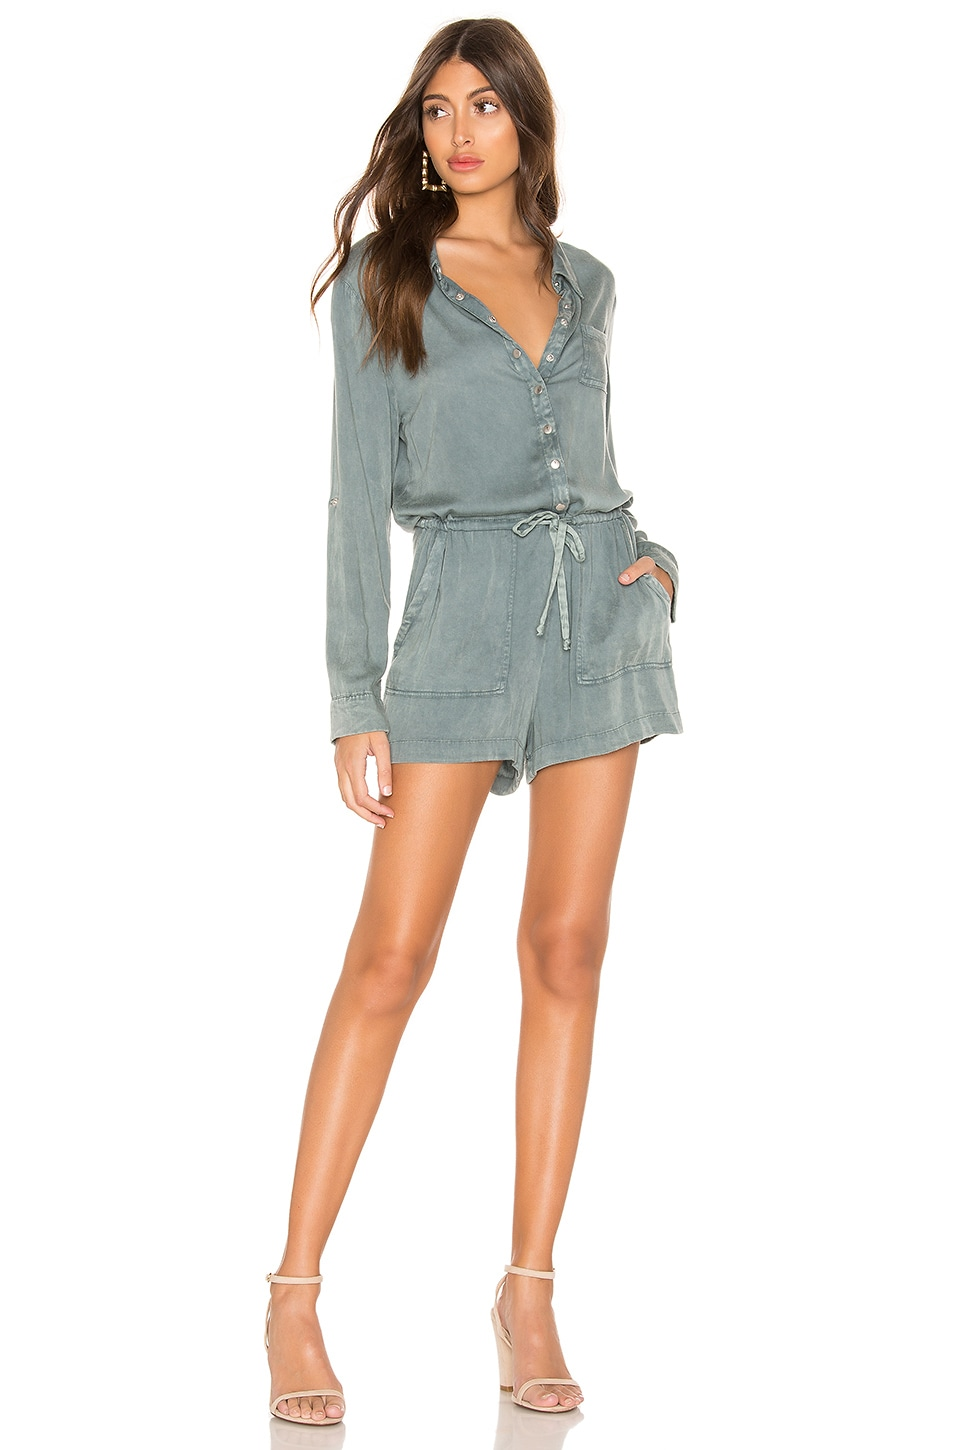 Chaser Snap Front Collared Romper in Succulent Cloud Wash